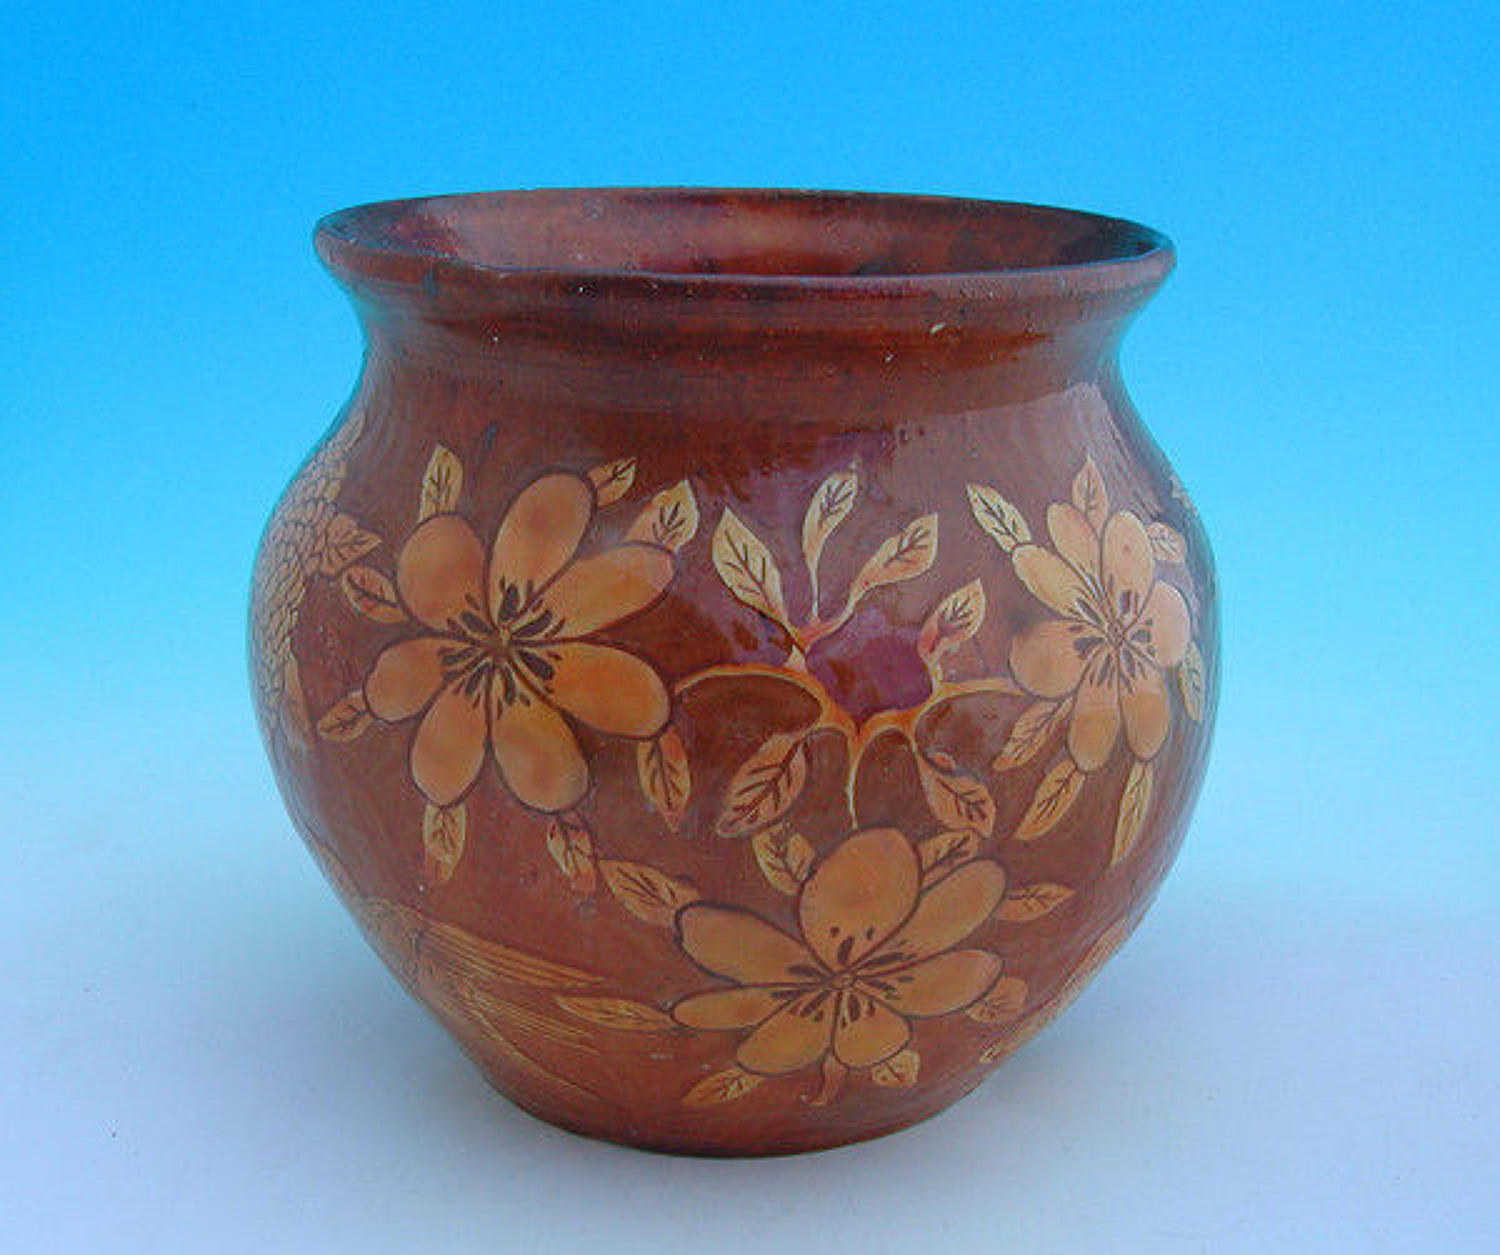 19thc Slipware Pottery Bideford Jardiniere.  English.  C1860-80.